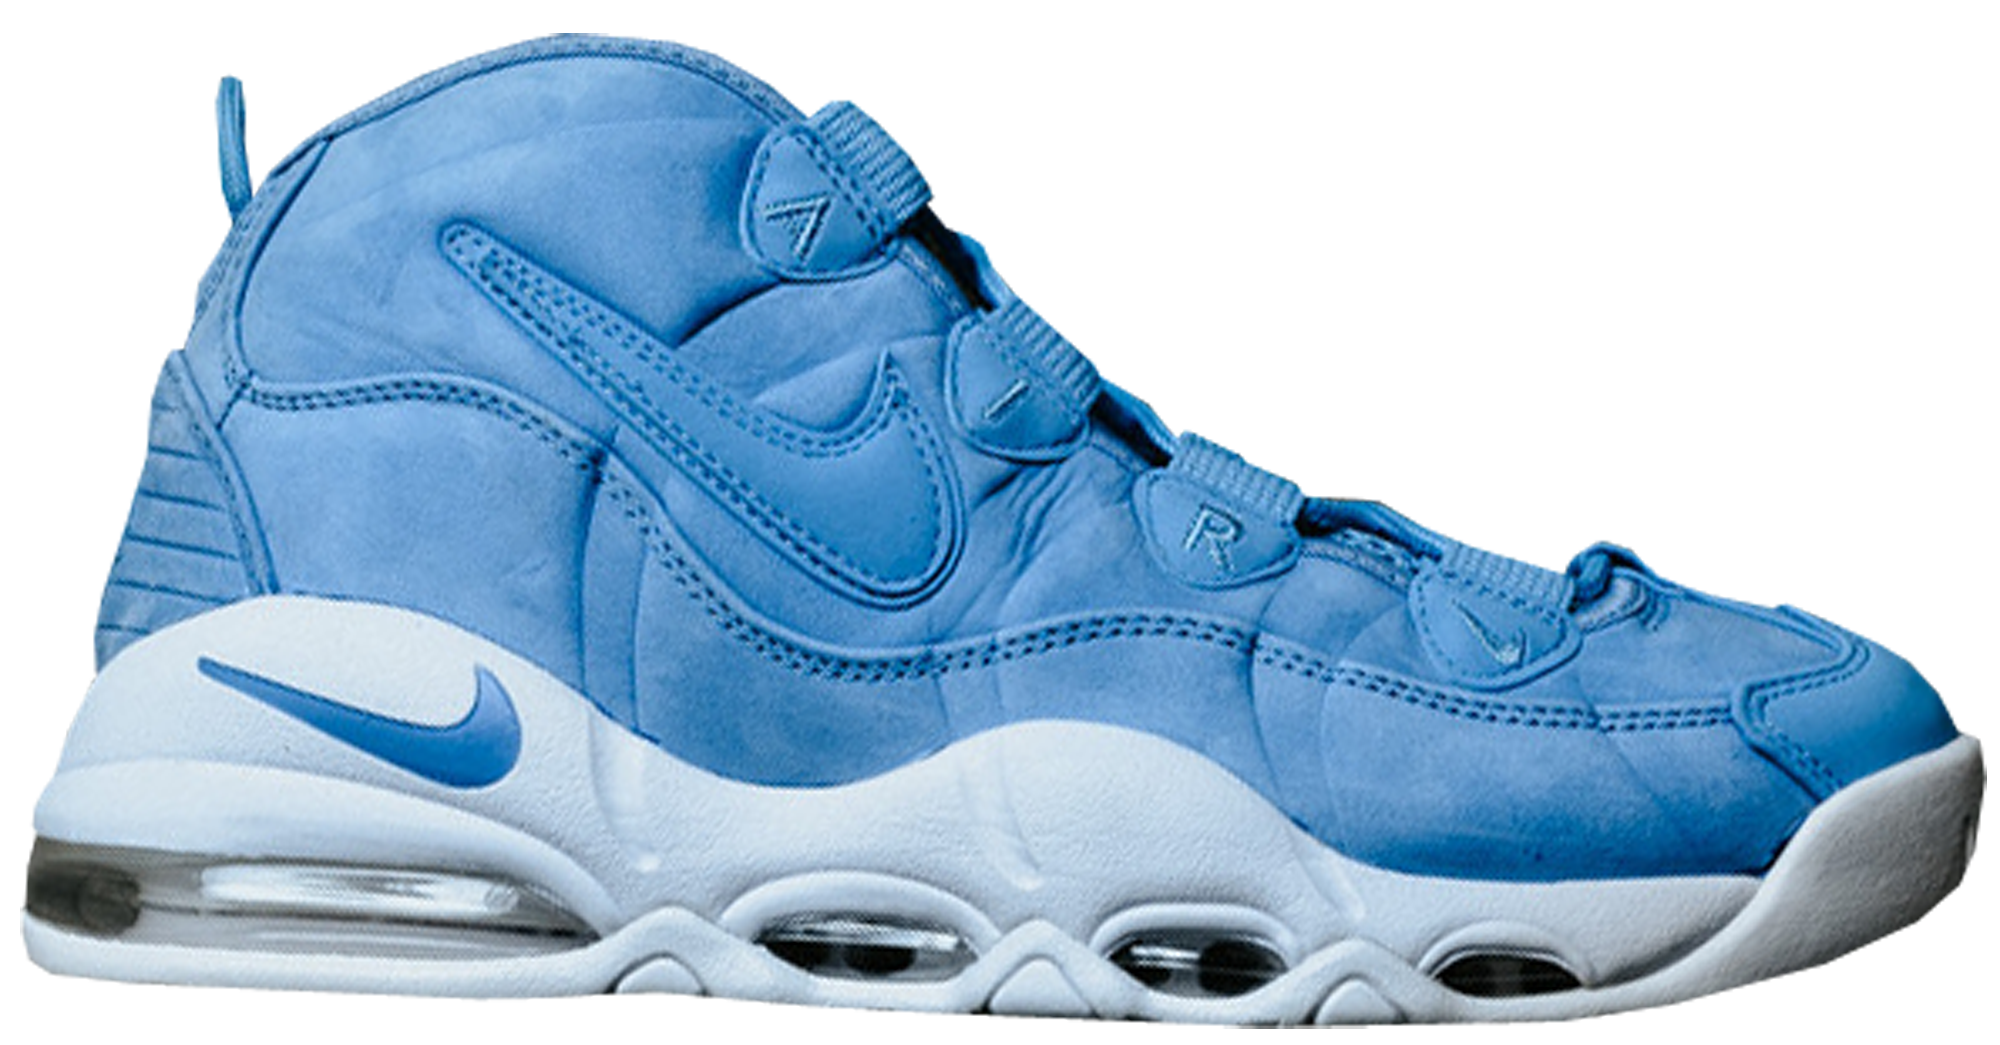 nike air max uptempo 95 qs blue